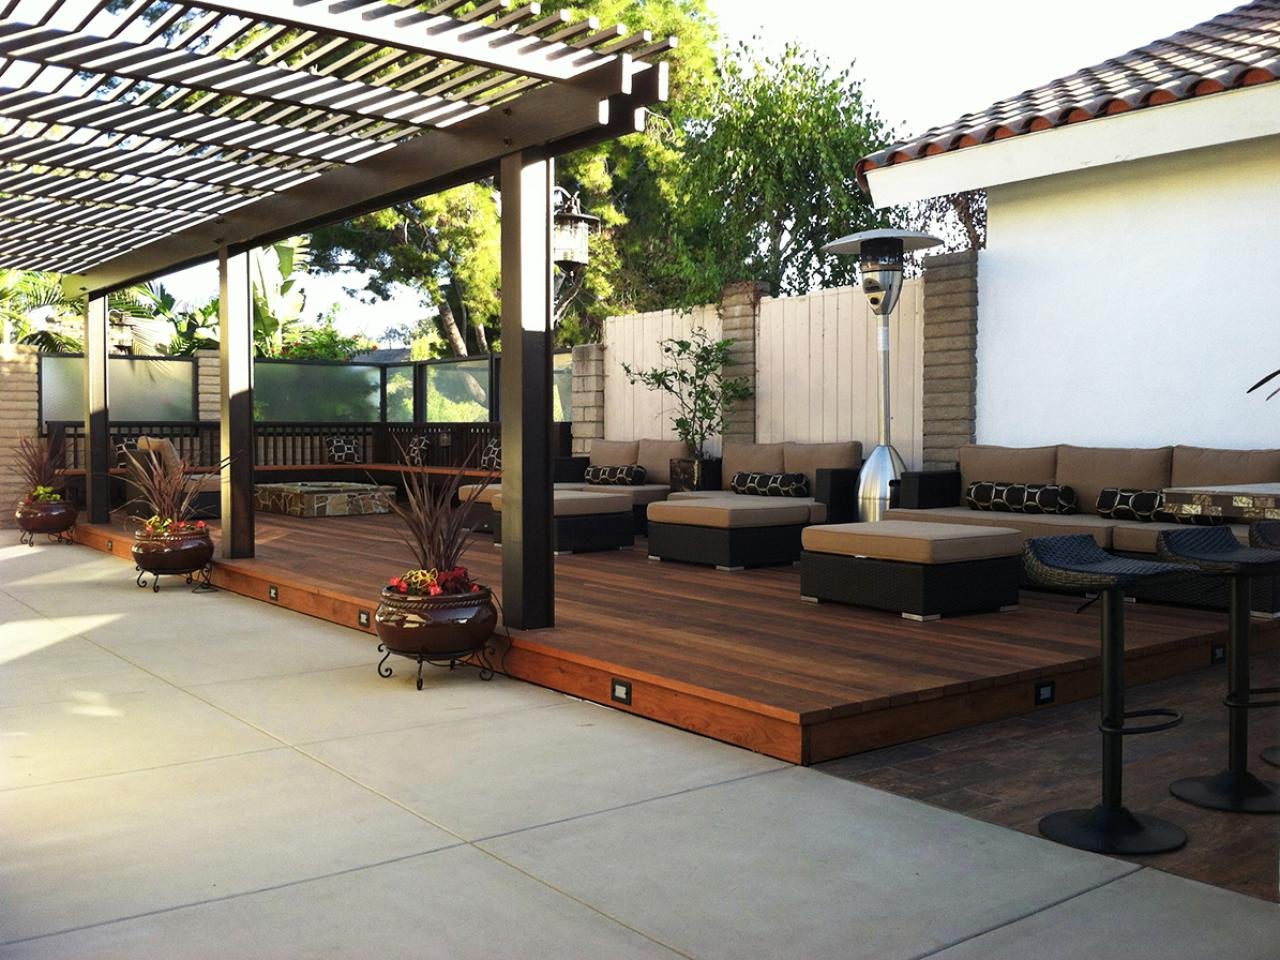 Deck design ideas outdoor spaces patio ideas decks for Landscape exterior design